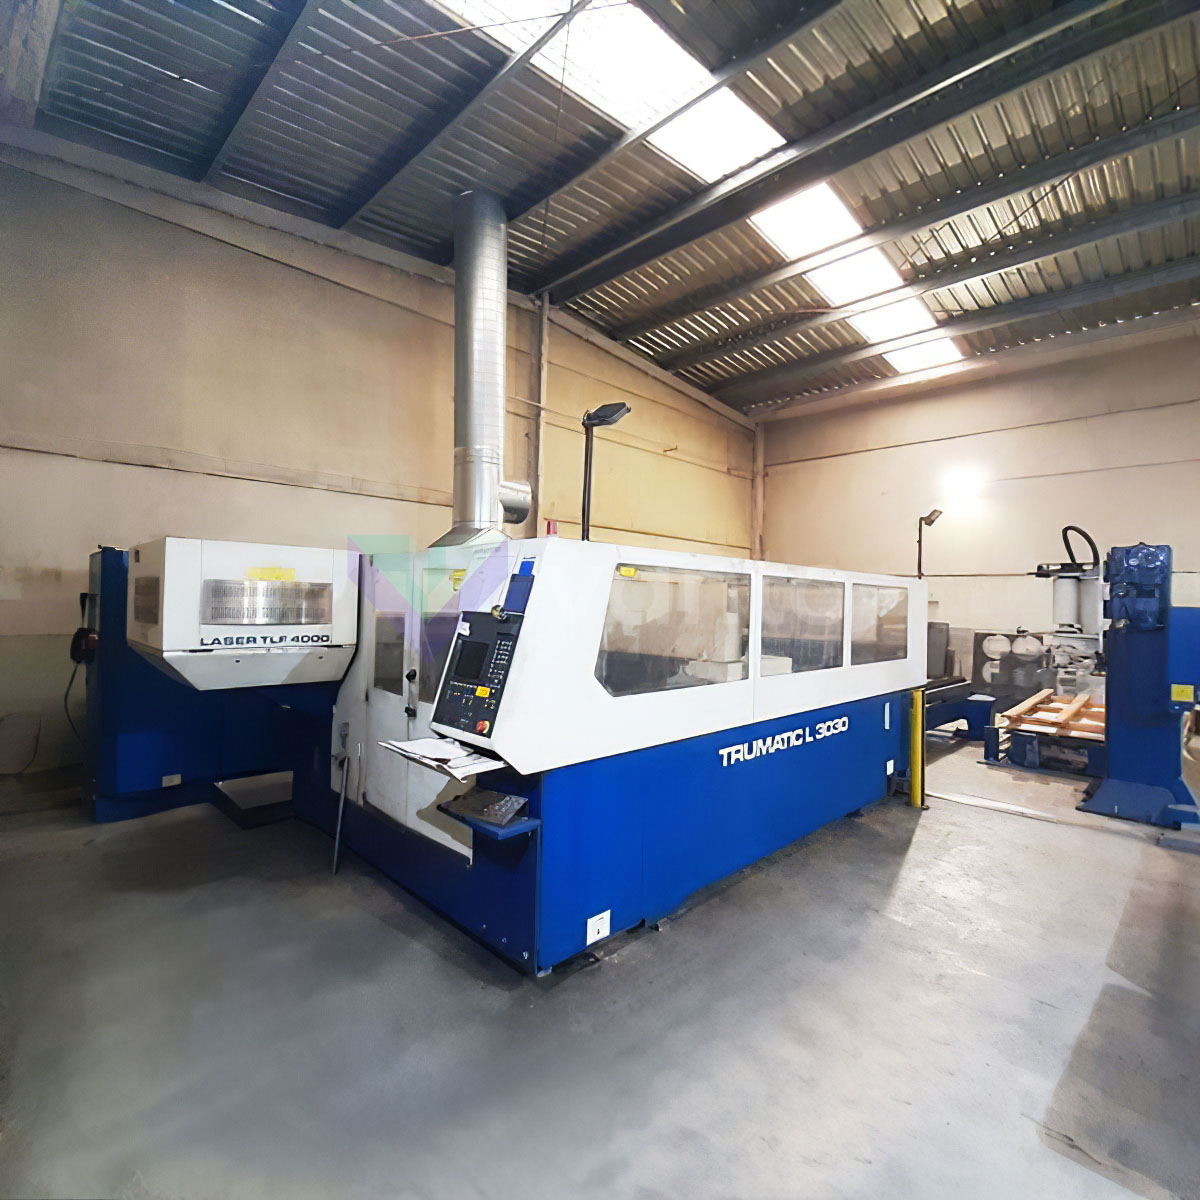 Machine de découpe laser (CO2) TRUMPF TRUMATIC L3030 (2002) id10451